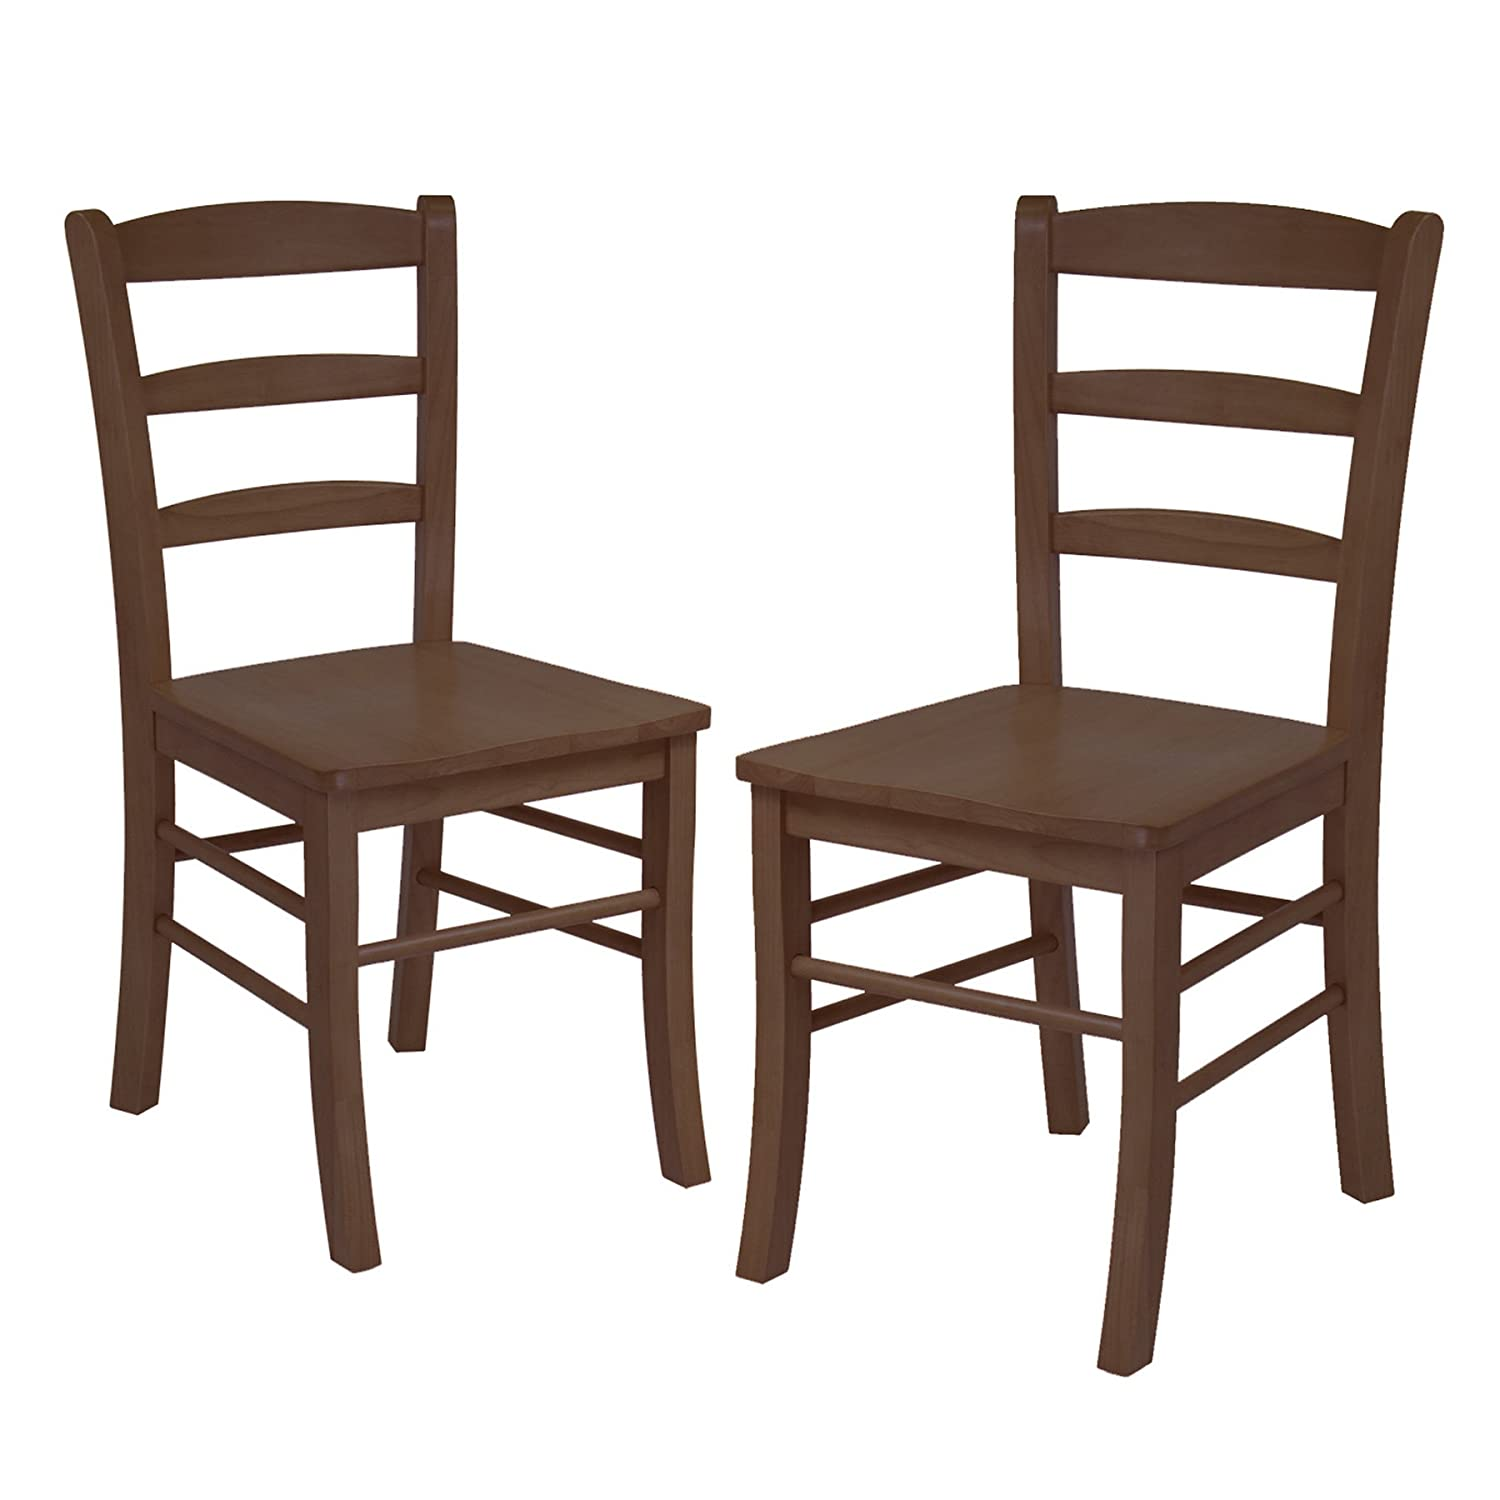 Amazon.com: Winsome Wood Ladder Back Chair, RTA, Antique Walnut, Set Of 2:  Kitchen U0026 Dining